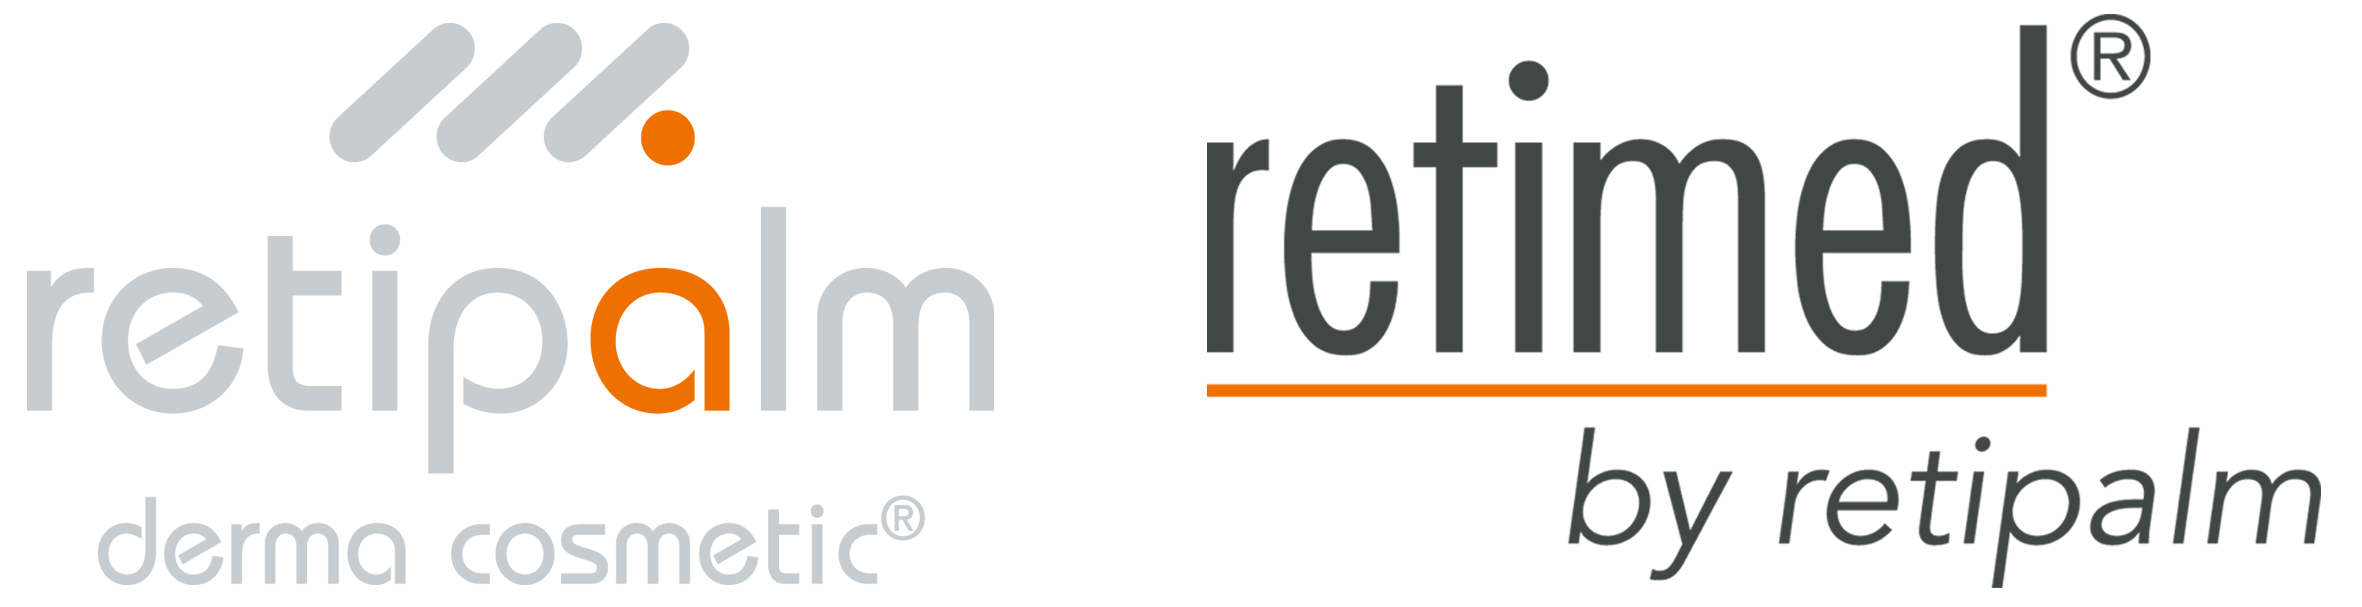 retipalm-shop.de